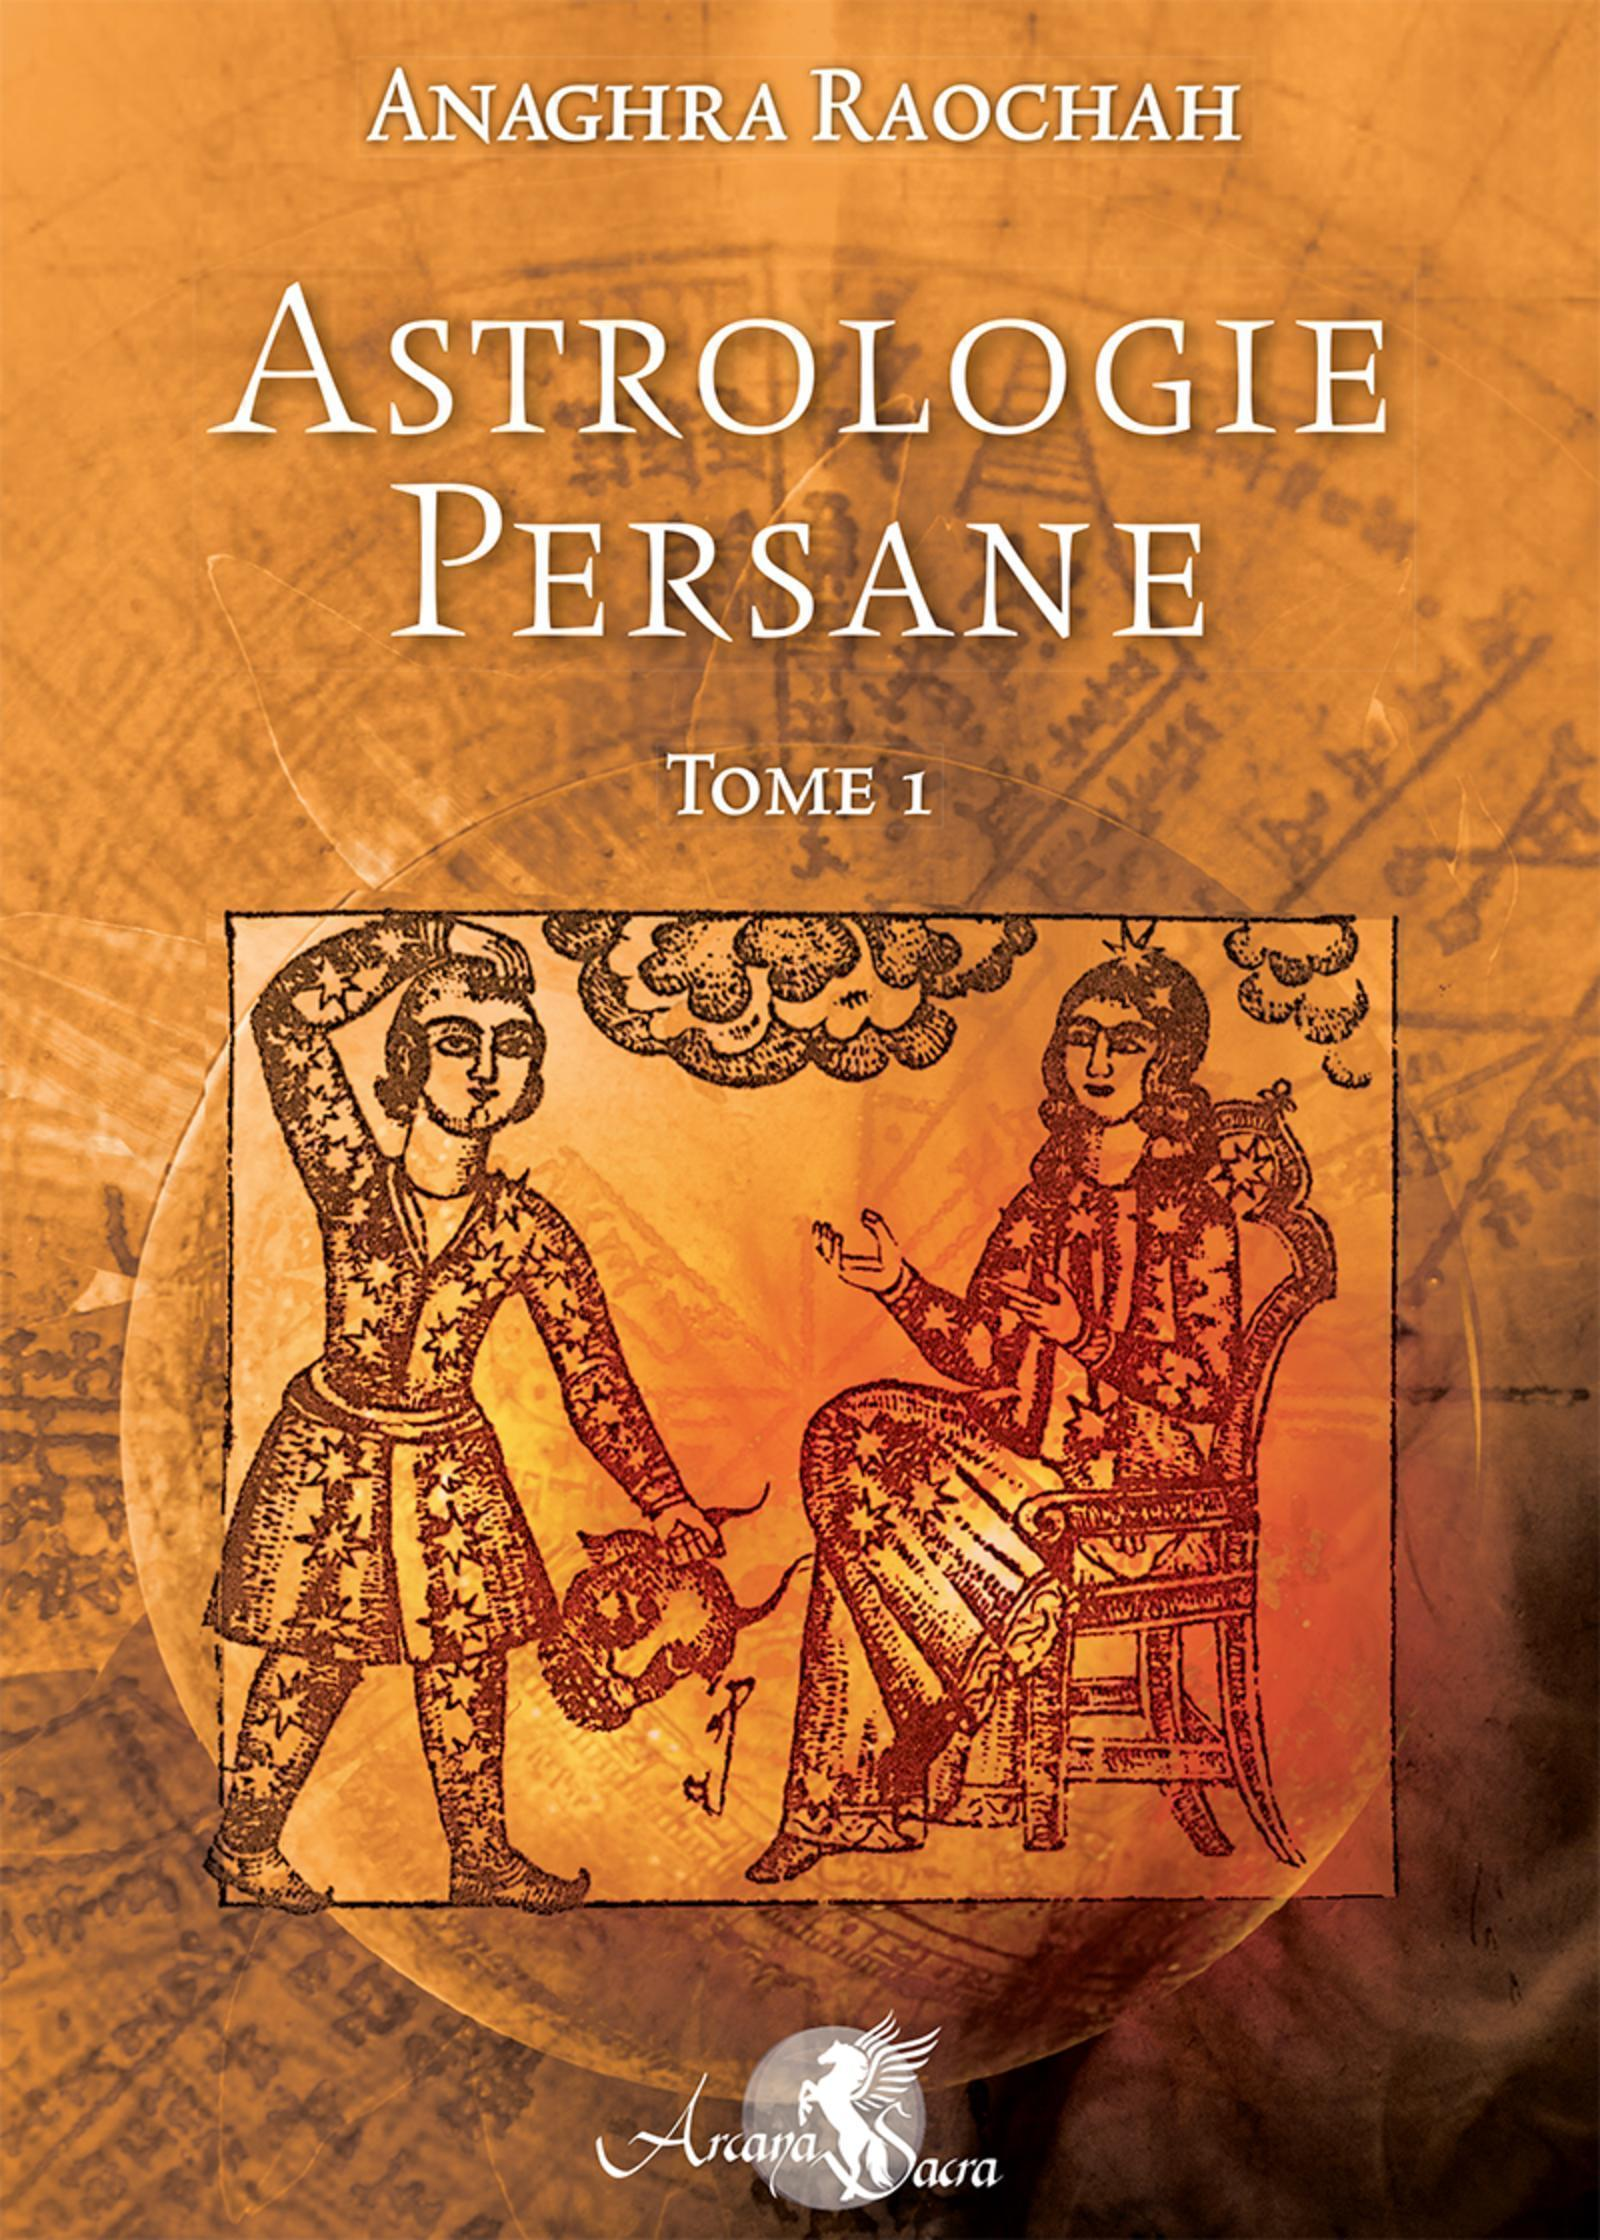 ASTROLOGIE PERSANE TOME 1